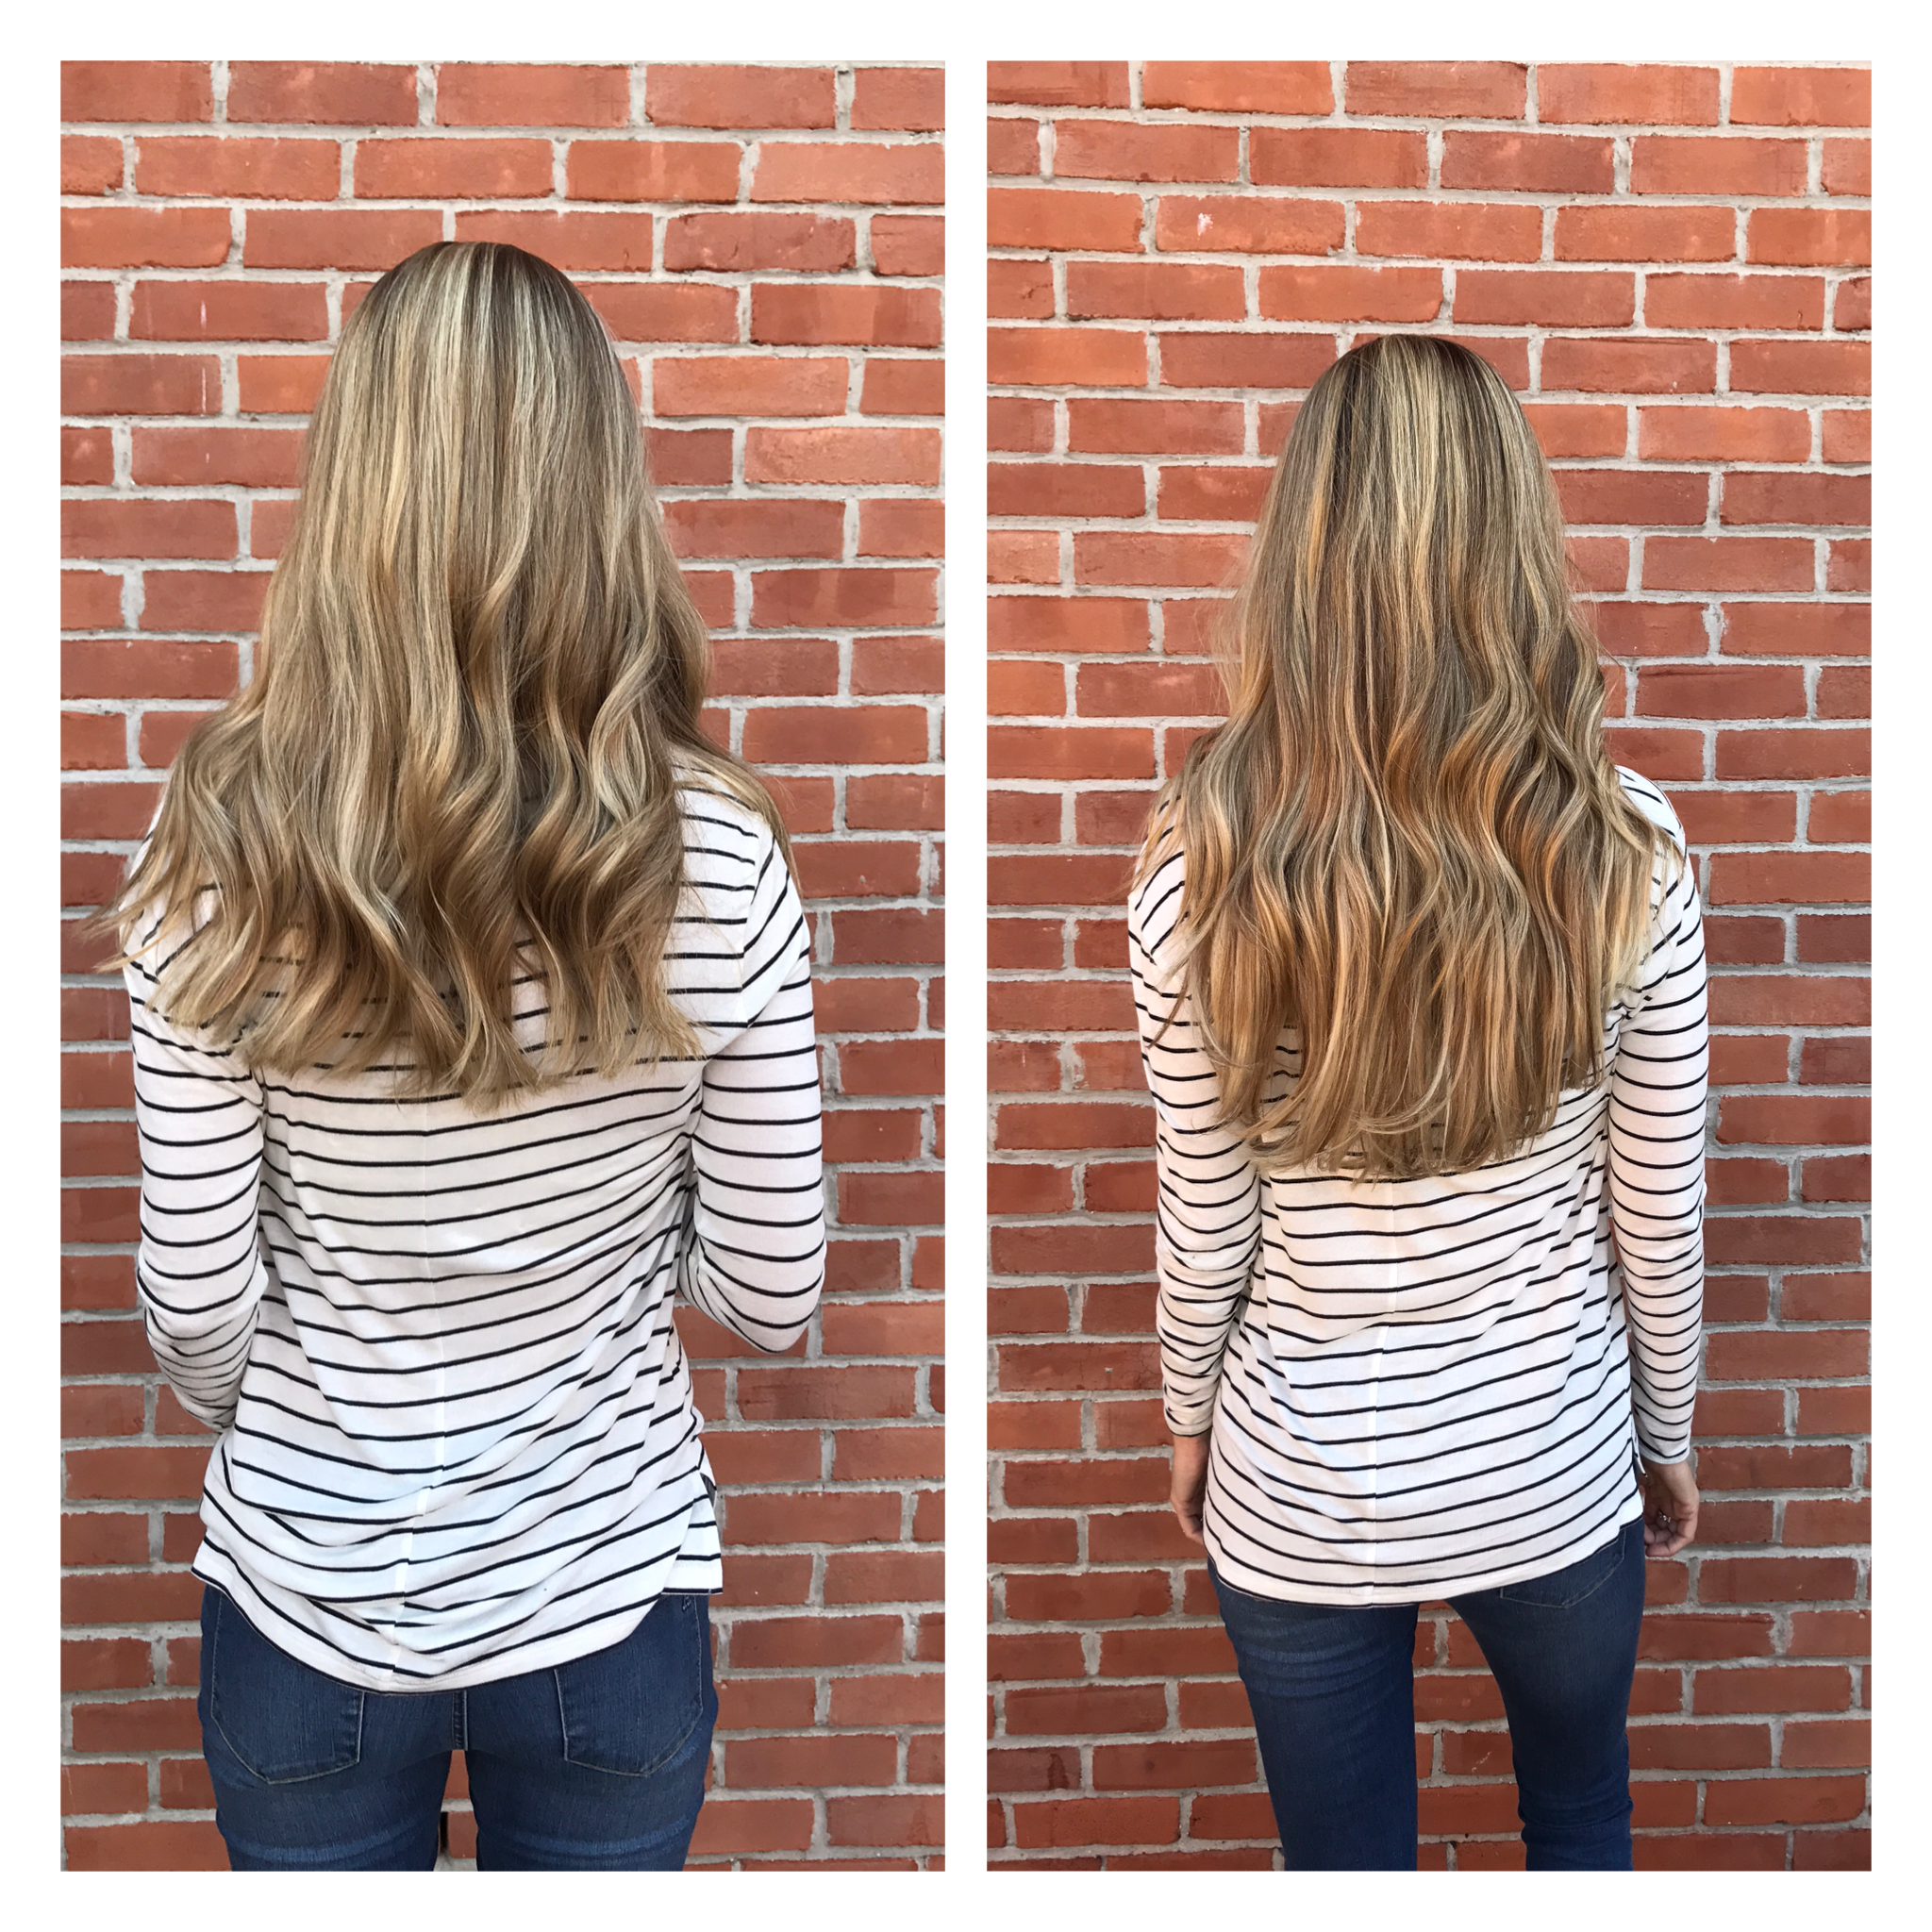 Bonded Hair Extensions Review